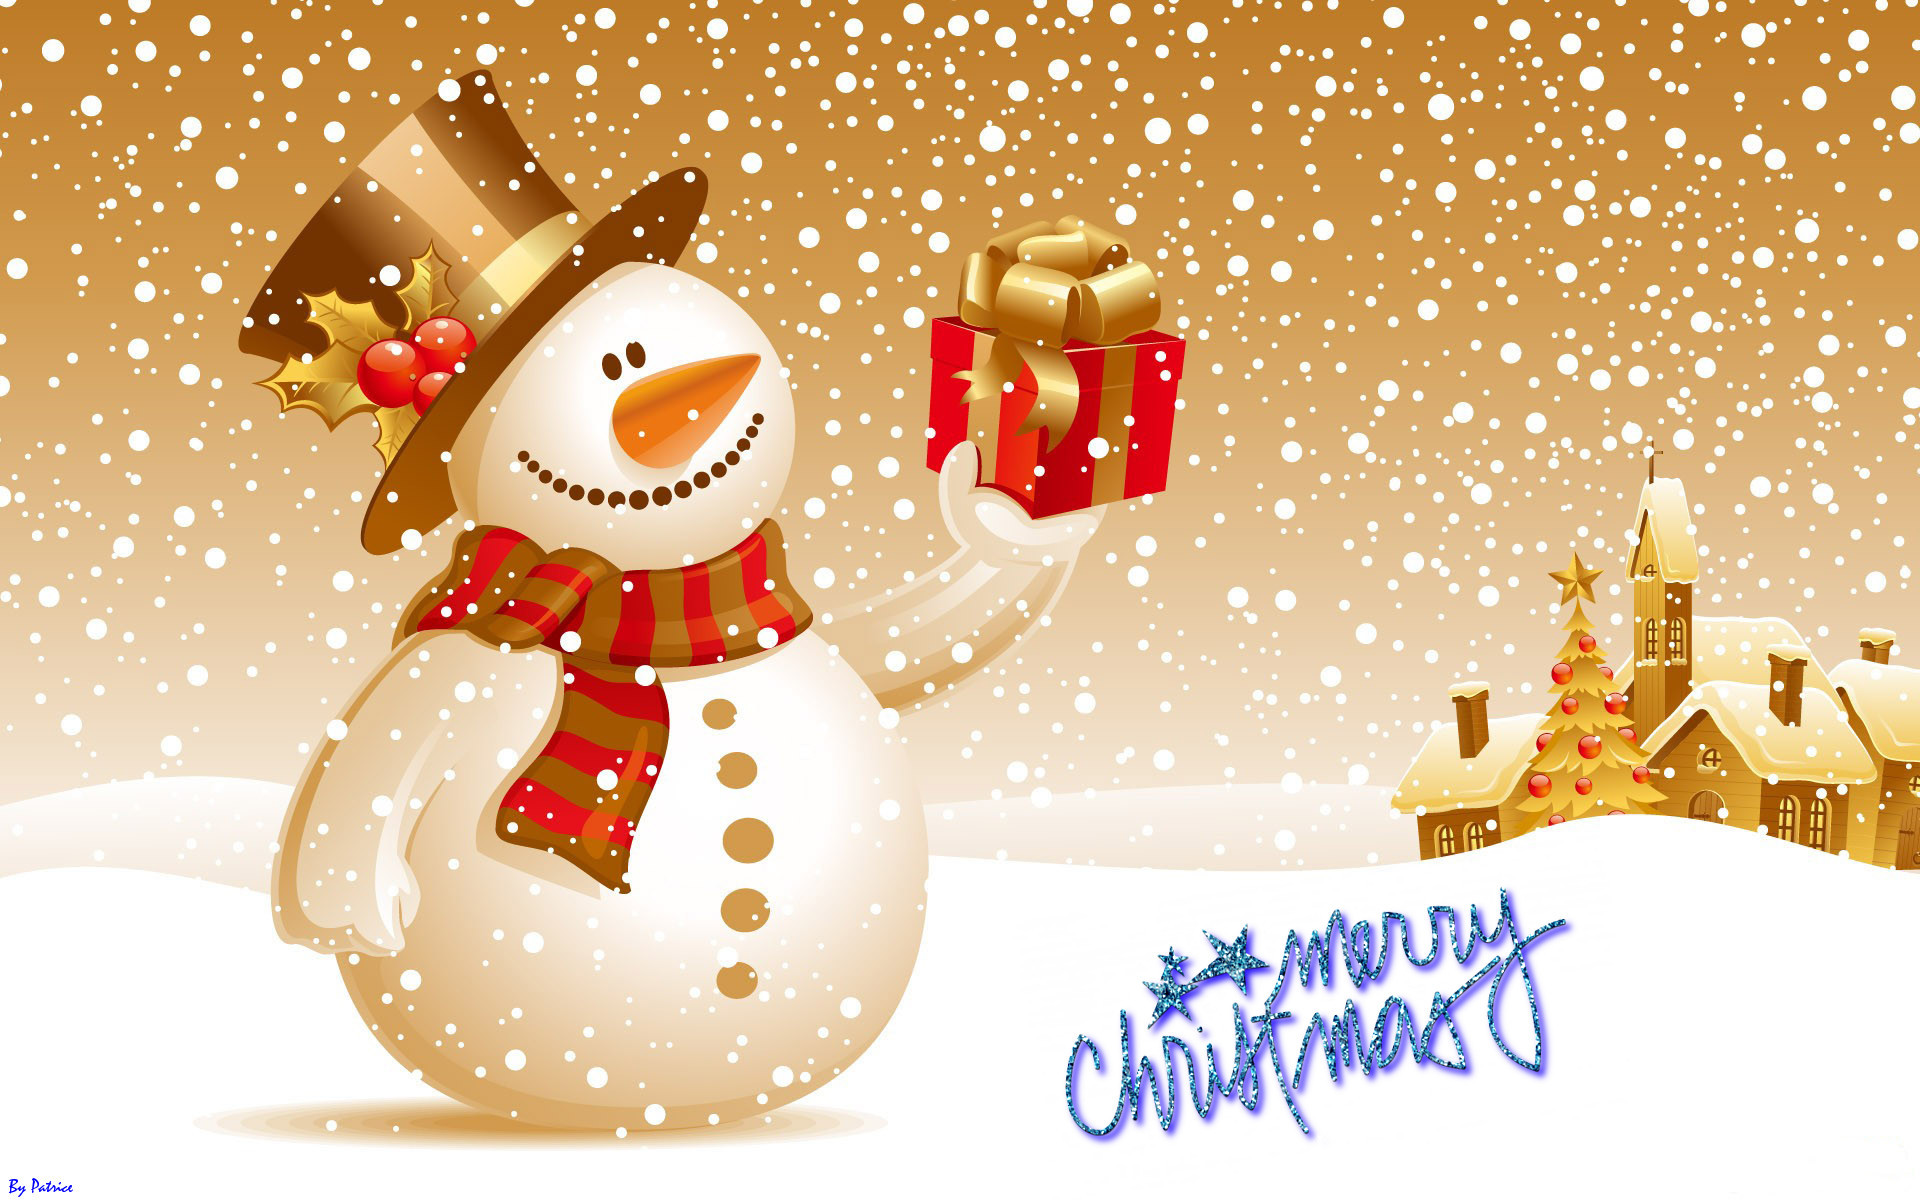 Merry Christmas to all my readers. Thank you so much for visiting my website!